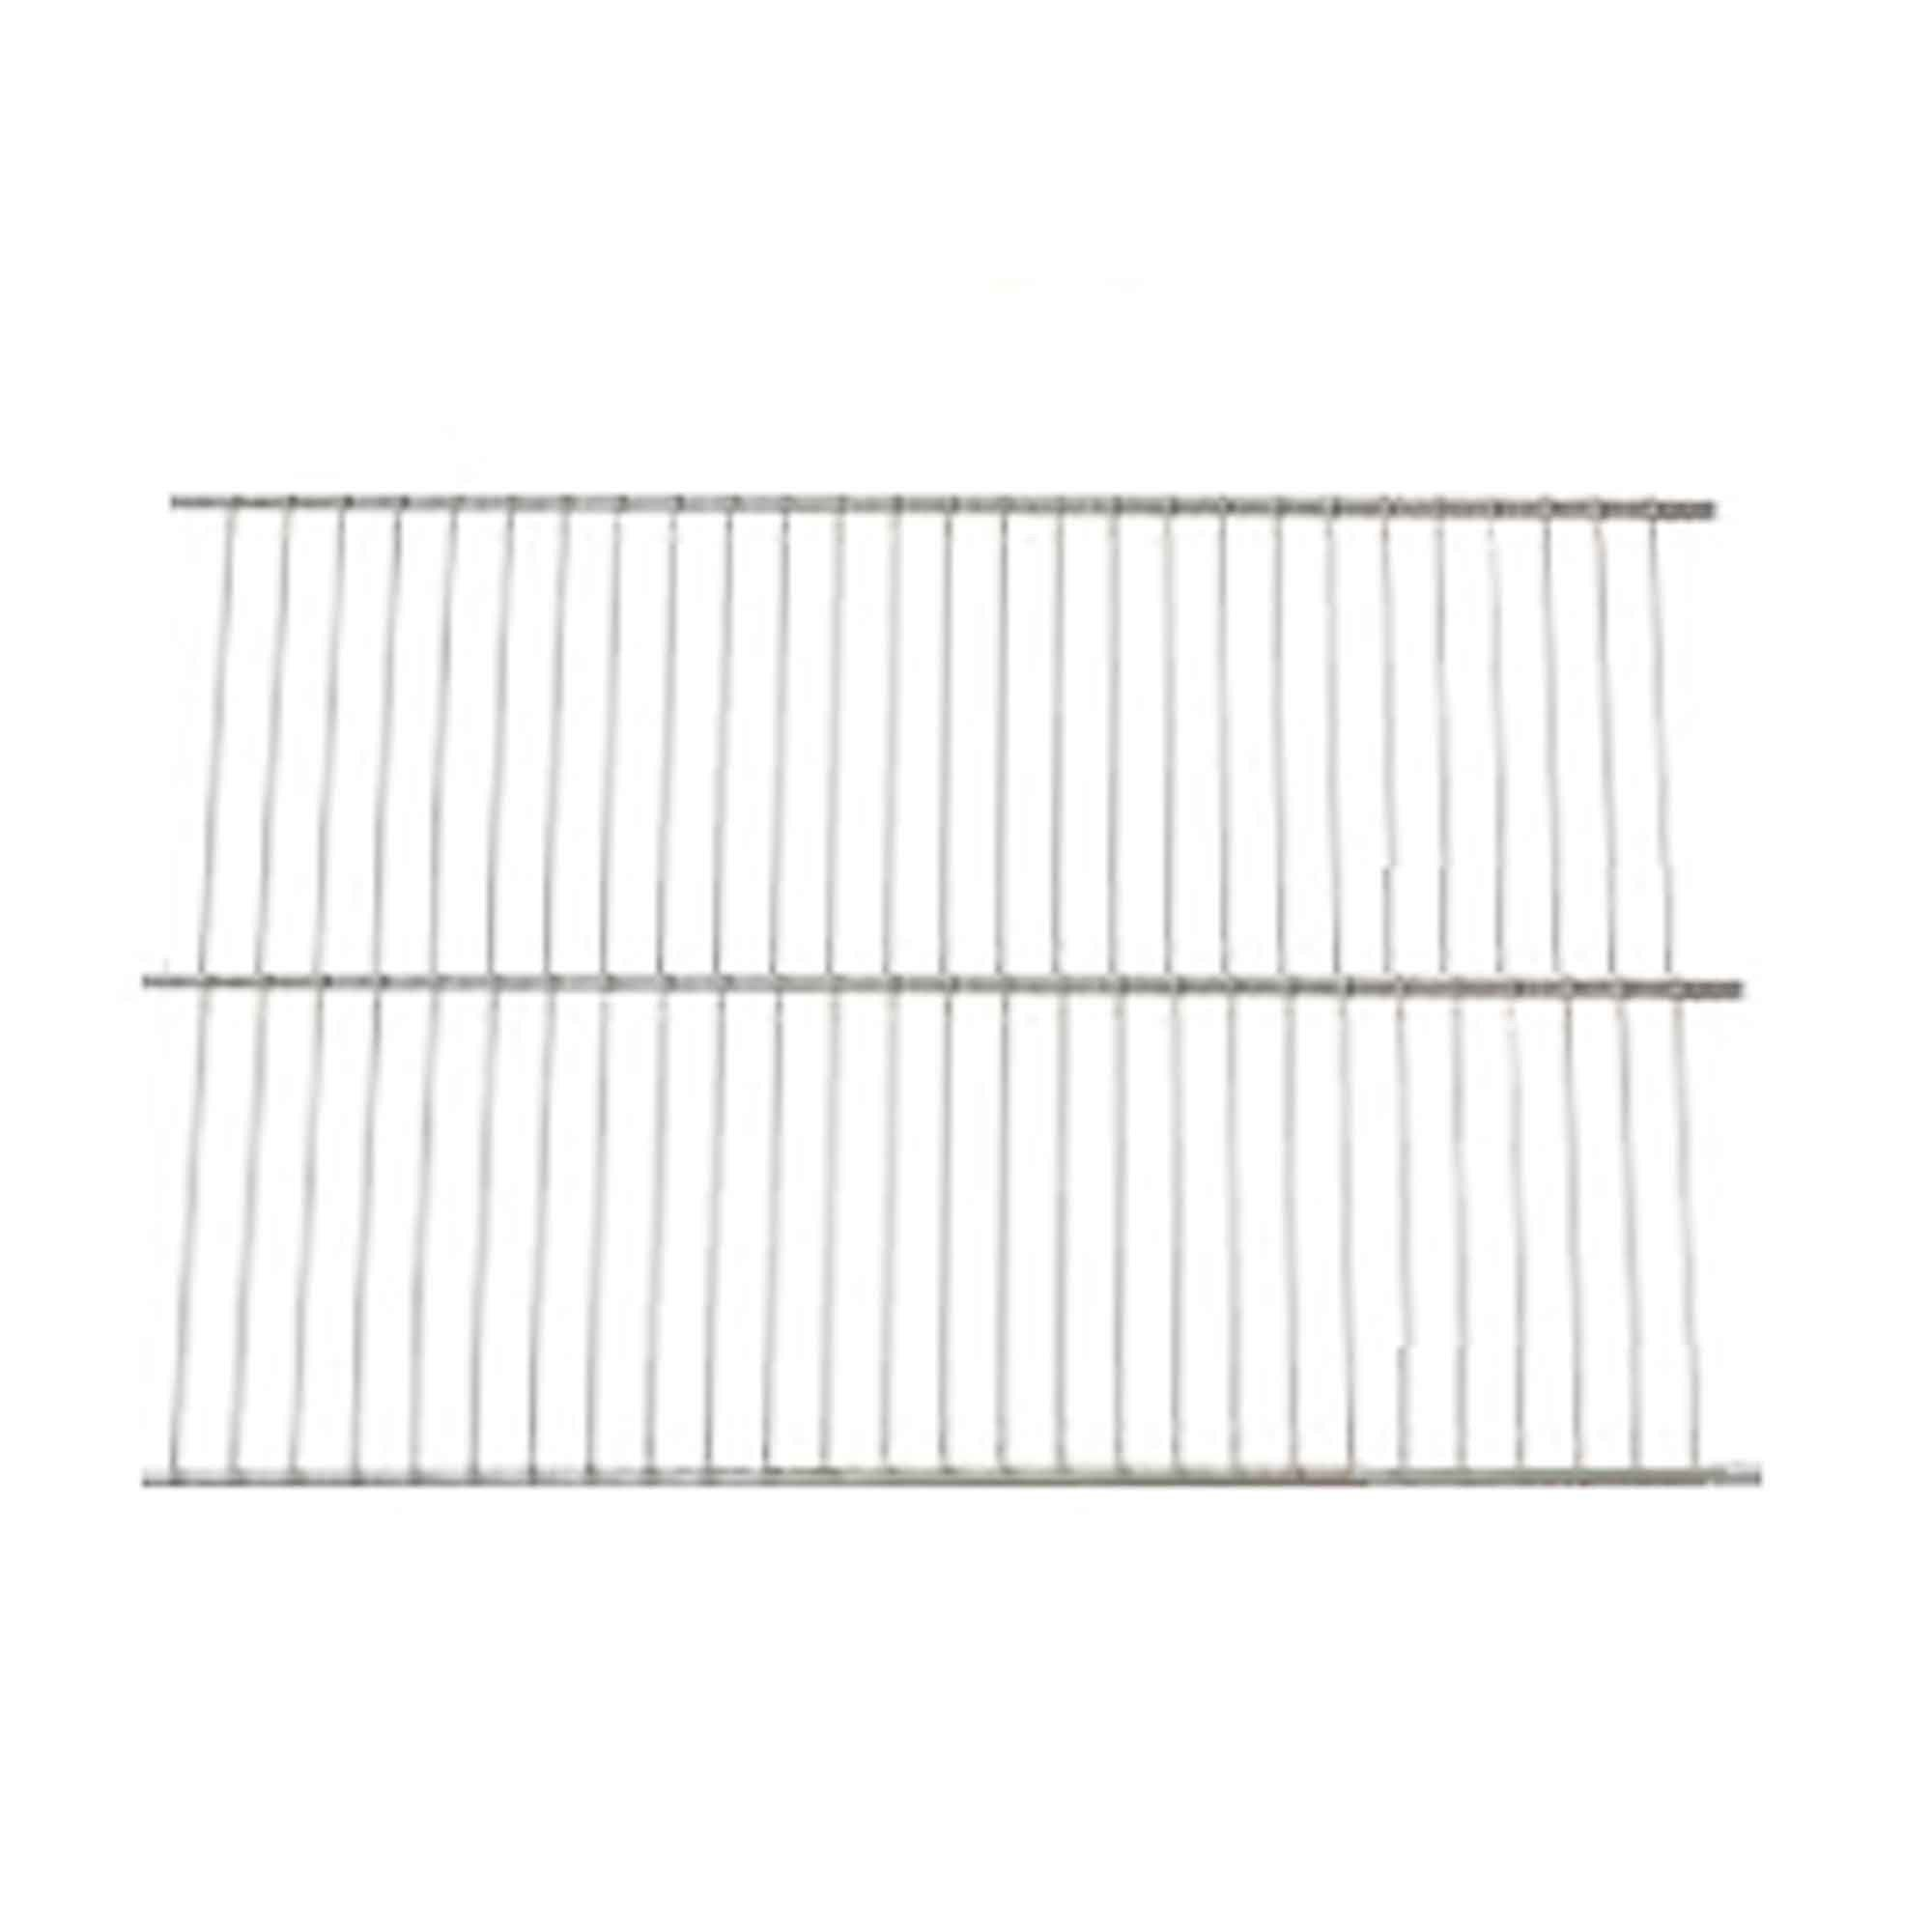 W10838310 For Whirlpool Freezer Wire Shelf | Shelves and Products